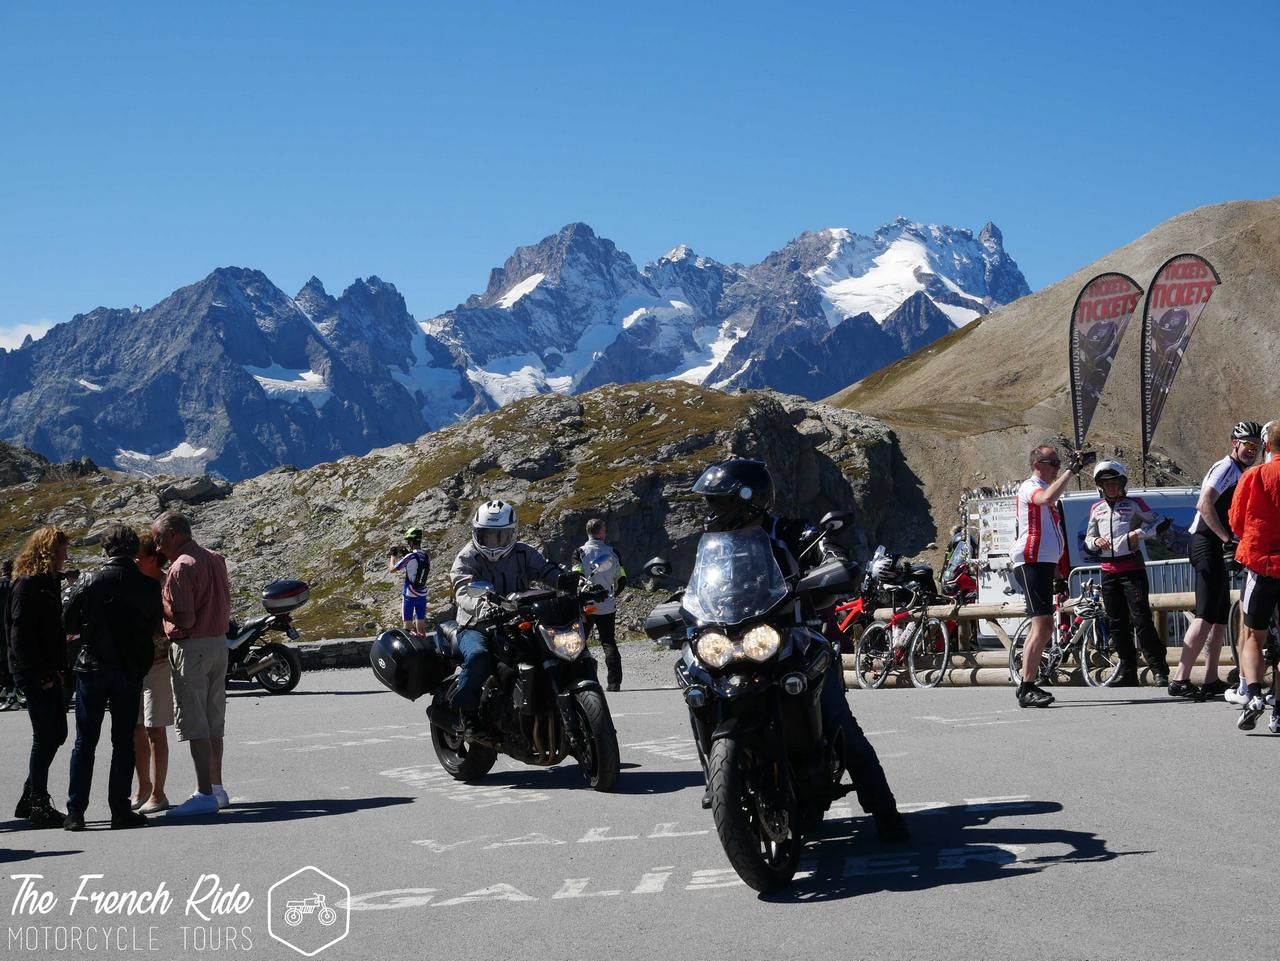 guided and self-guided motorcycle tours and motorcycle rental in the alps, france, switzerland, italy, spain and europe